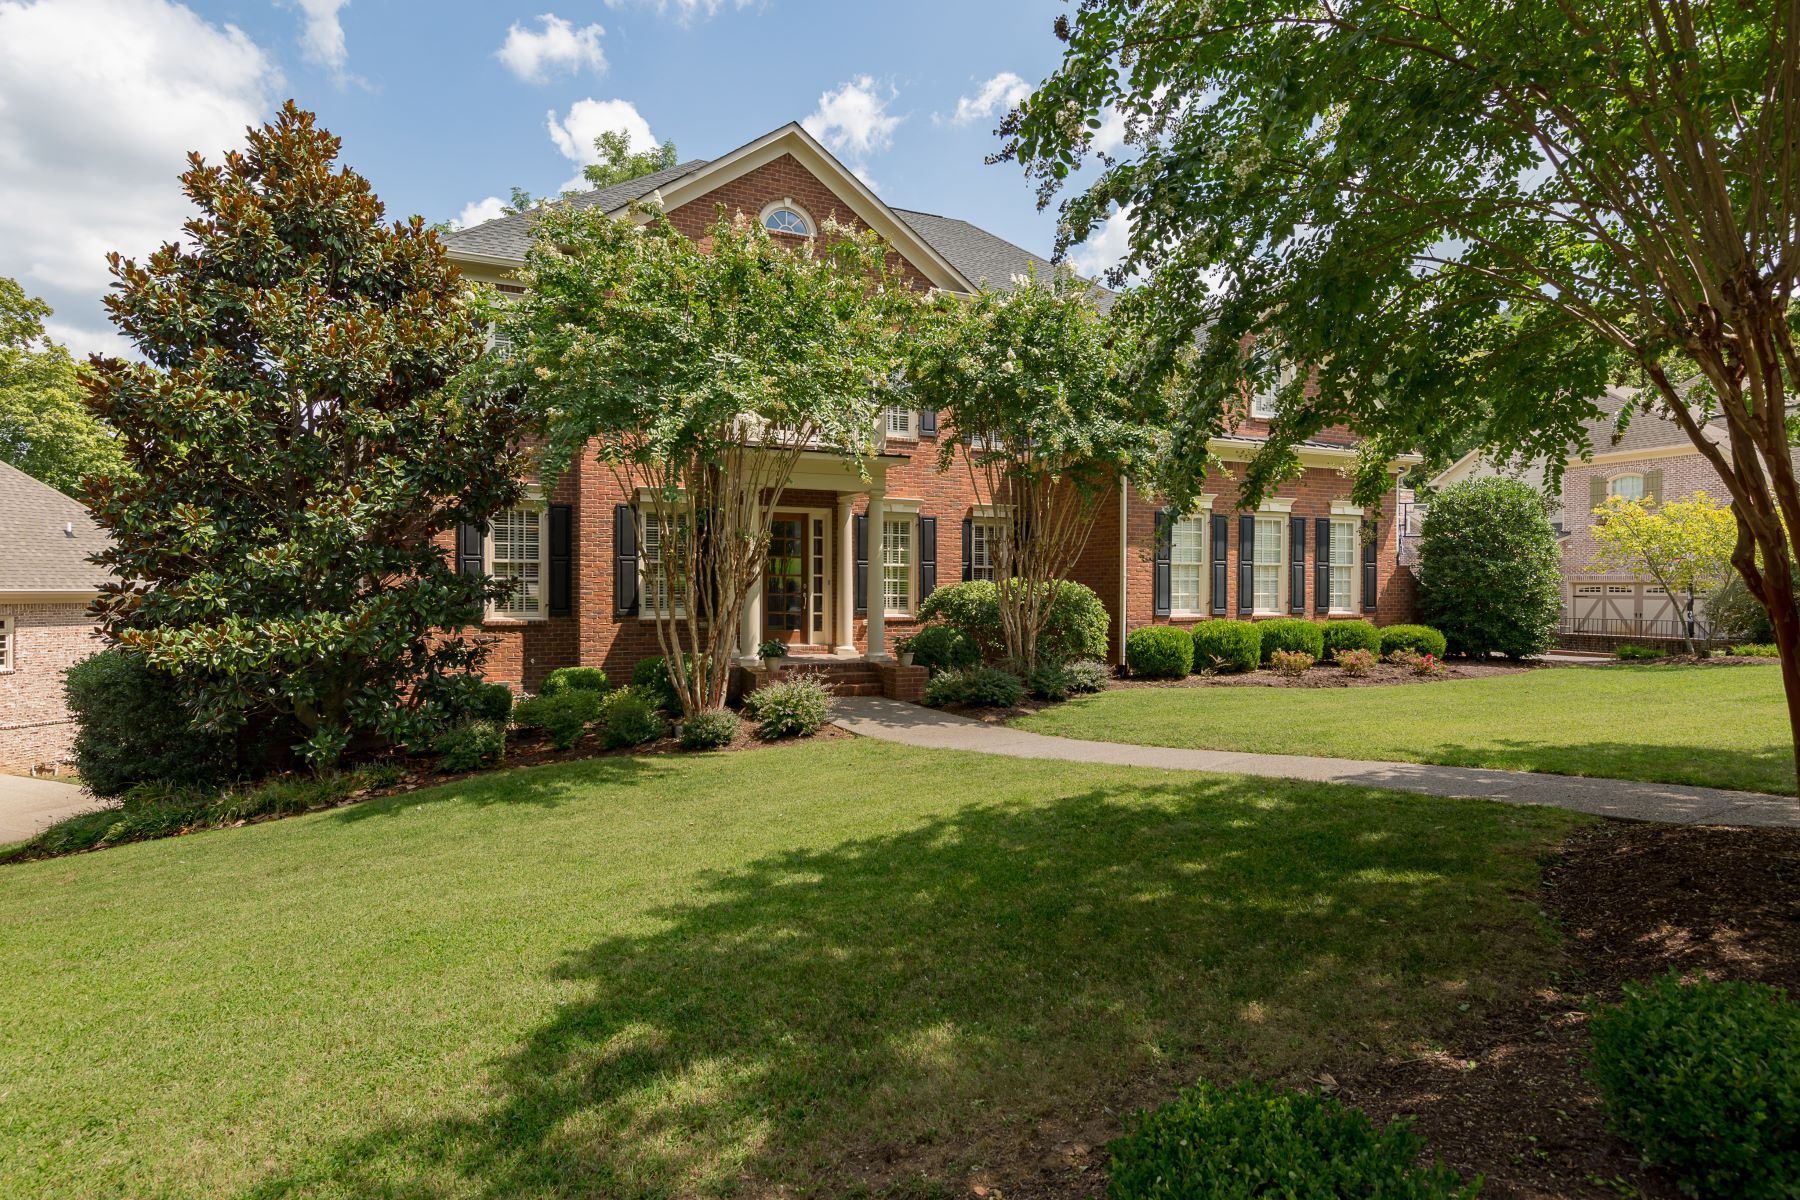 Single Family Home for Sale at Elegance and Livability Meet 112 Chatfield Way Franklin, Tennessee 37067 United States